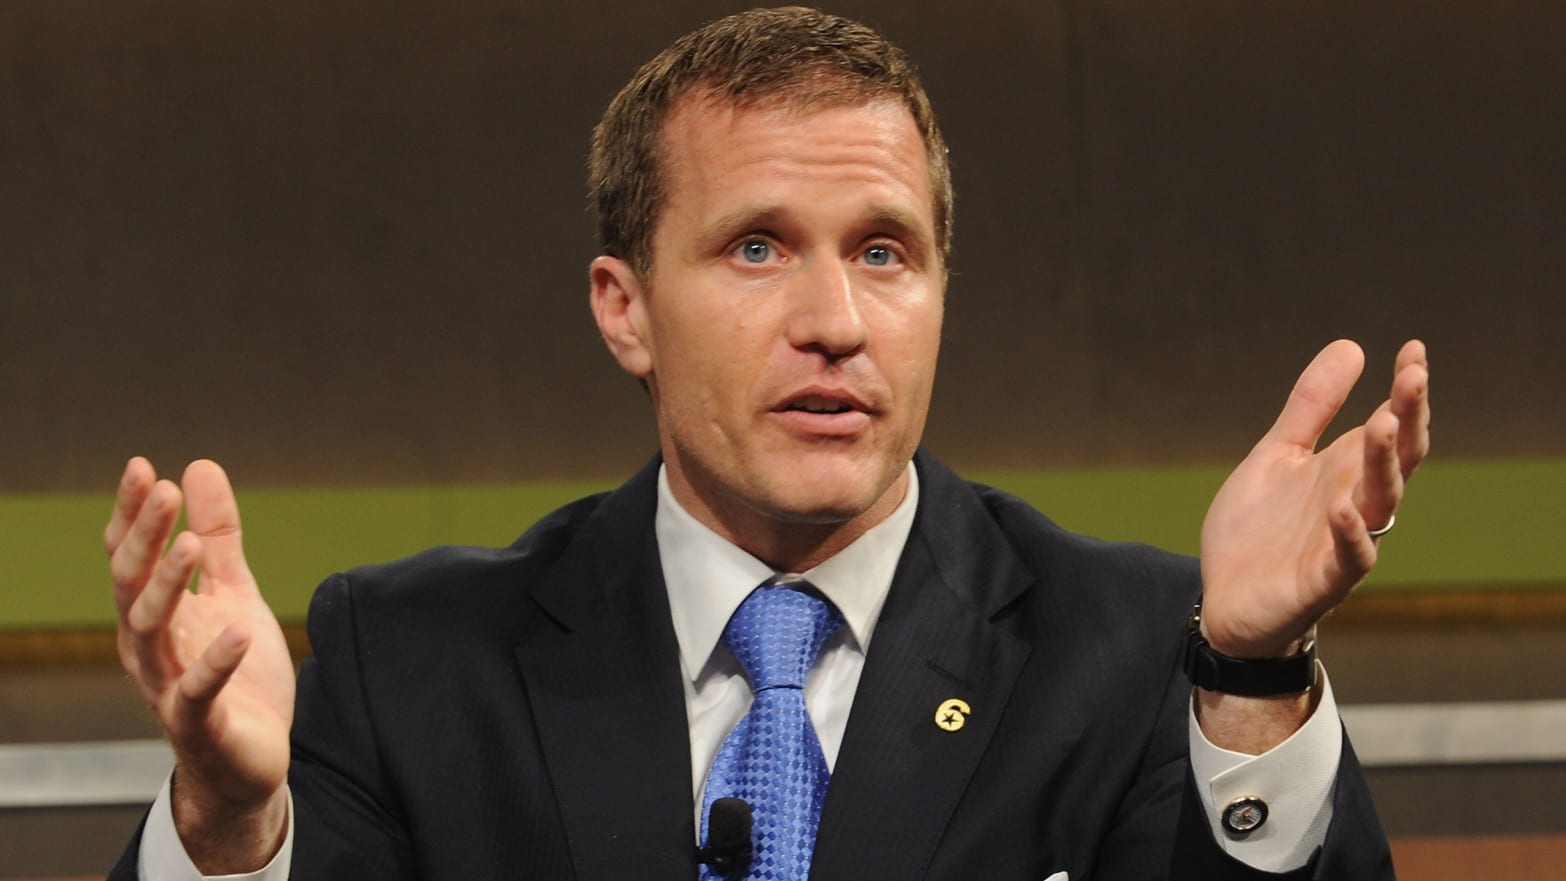 MISSOURI: Impeachment Looms For GOP Gov After Release Of